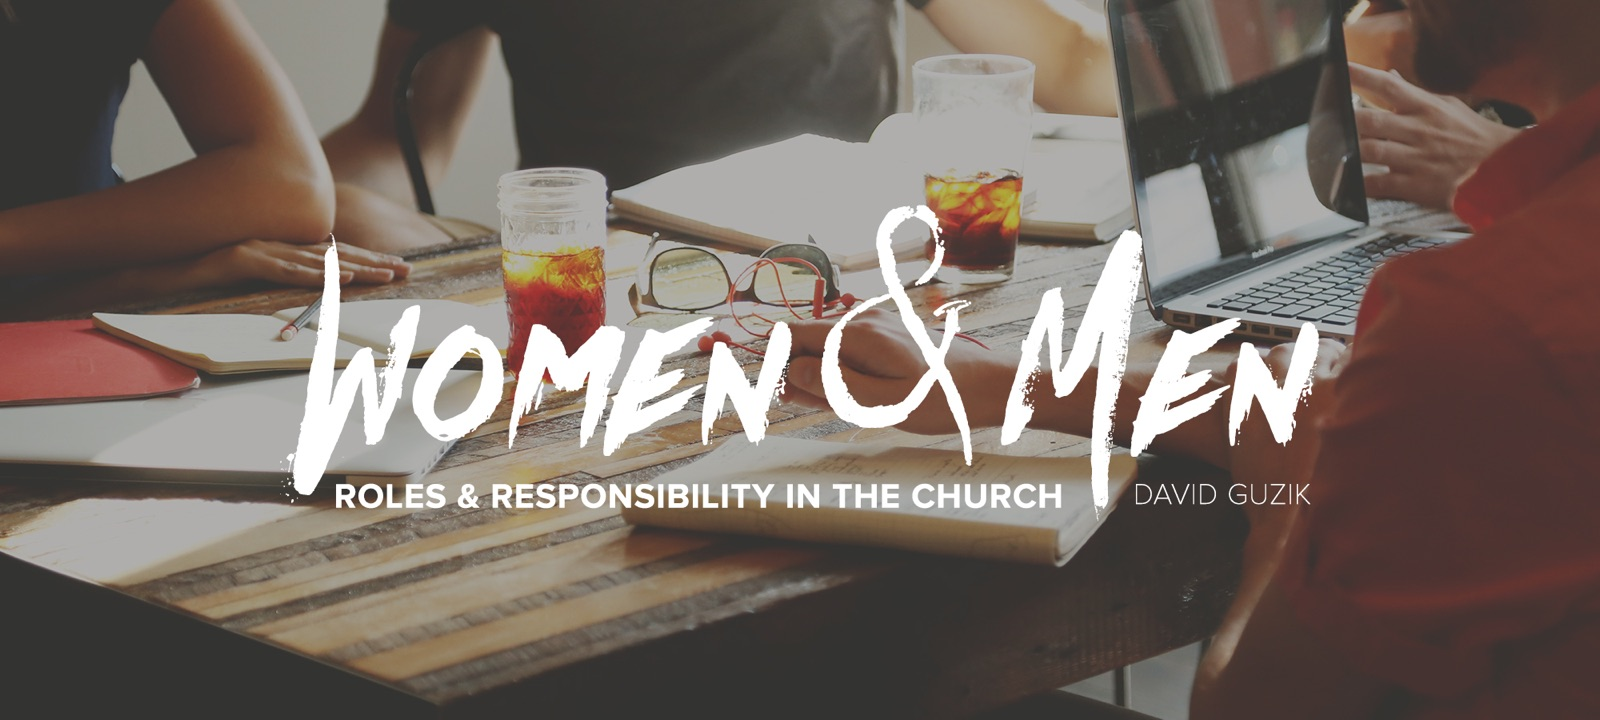 Women and Men: Roles and Responsibility in the Church